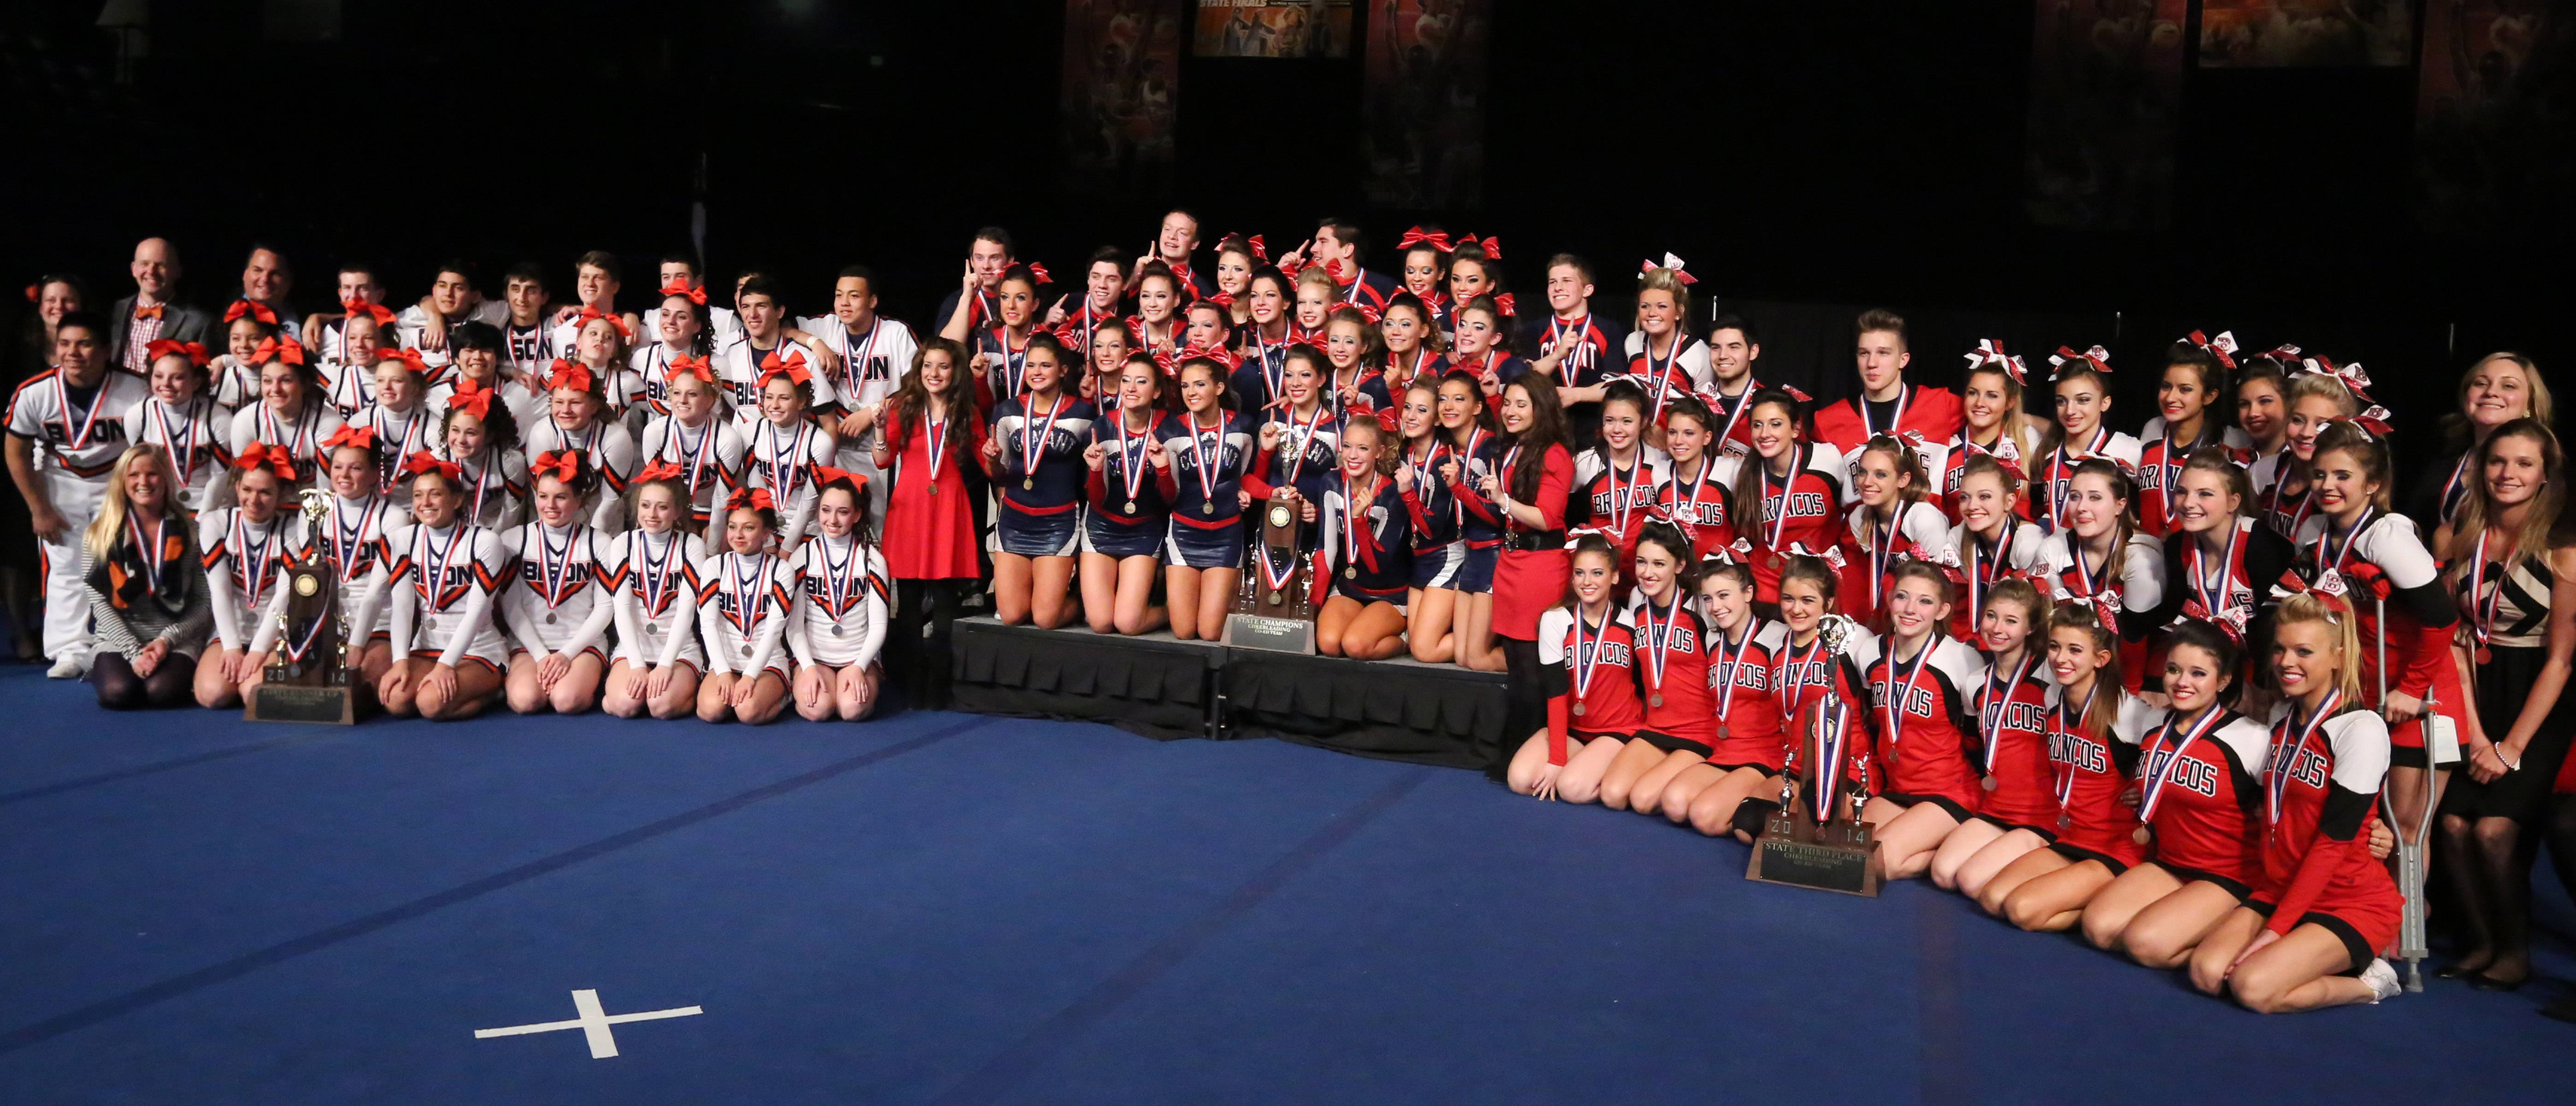 Suburban high school cheer teams swept the coed category at the IHSA cheer finals in Bloomington on Saturday. In the center is Conant with the first place trophy, at left is Buffalo Grove with the second place trophy and at right is Barrington with the 3rd place trophy.